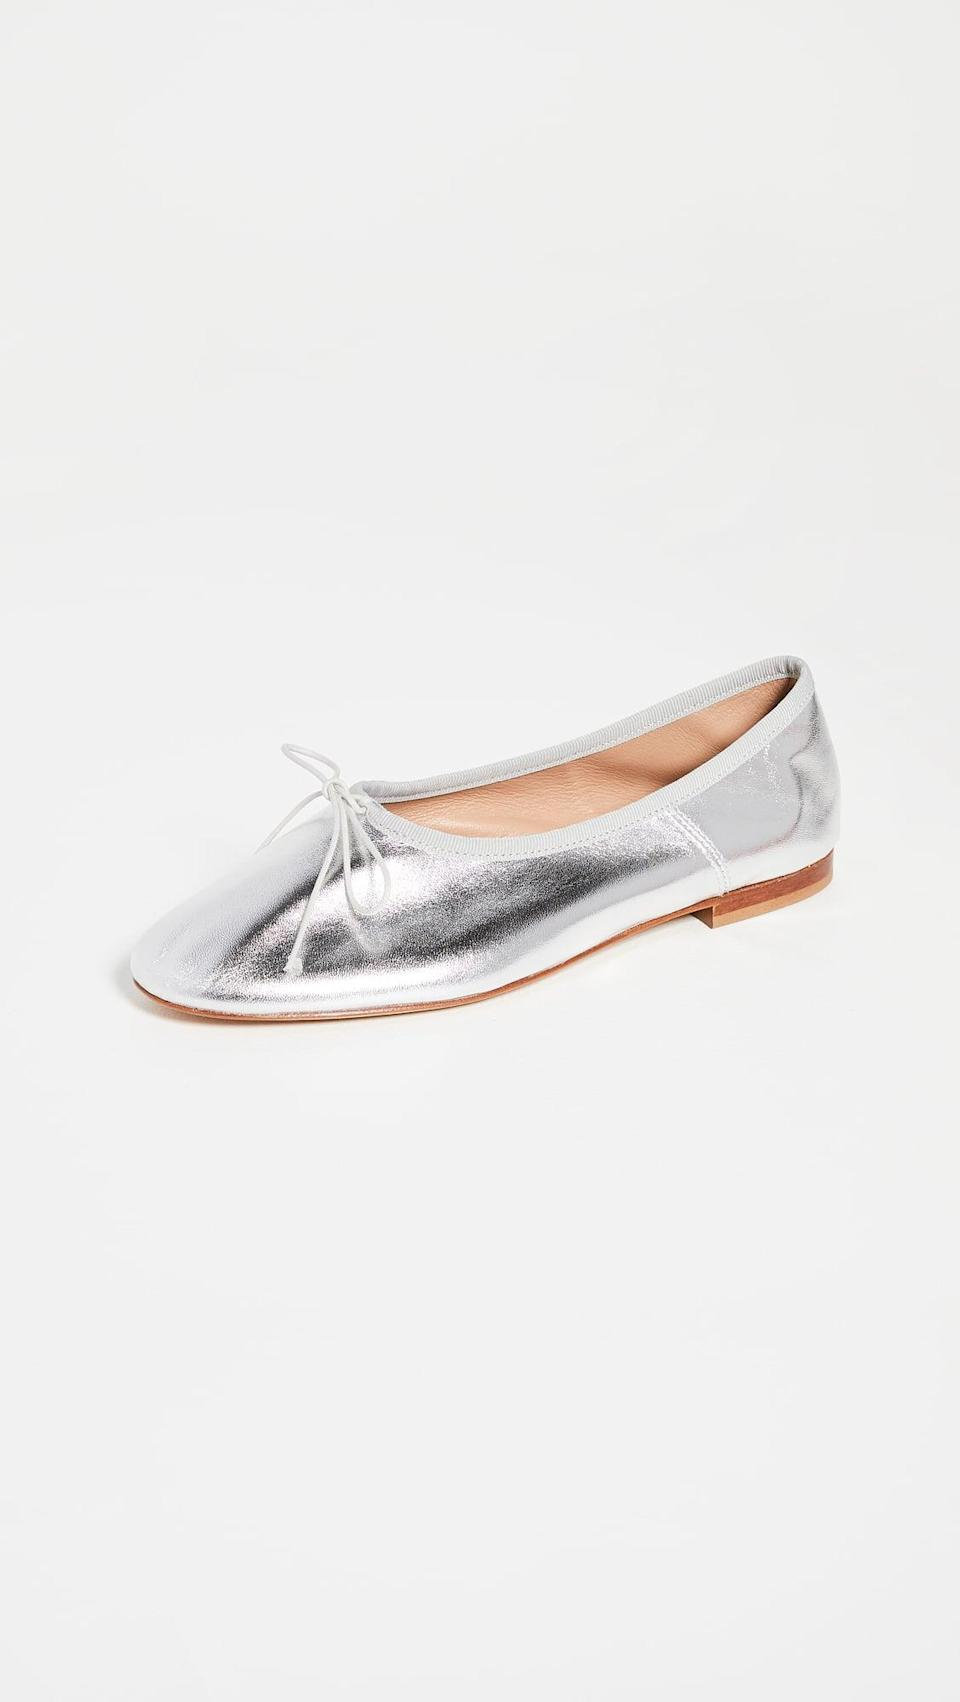 <p>Add some metallic shine to your wardrobe with the <span>Mansur Gavriel Dream Ballerina Flats</span> ($375).</p>